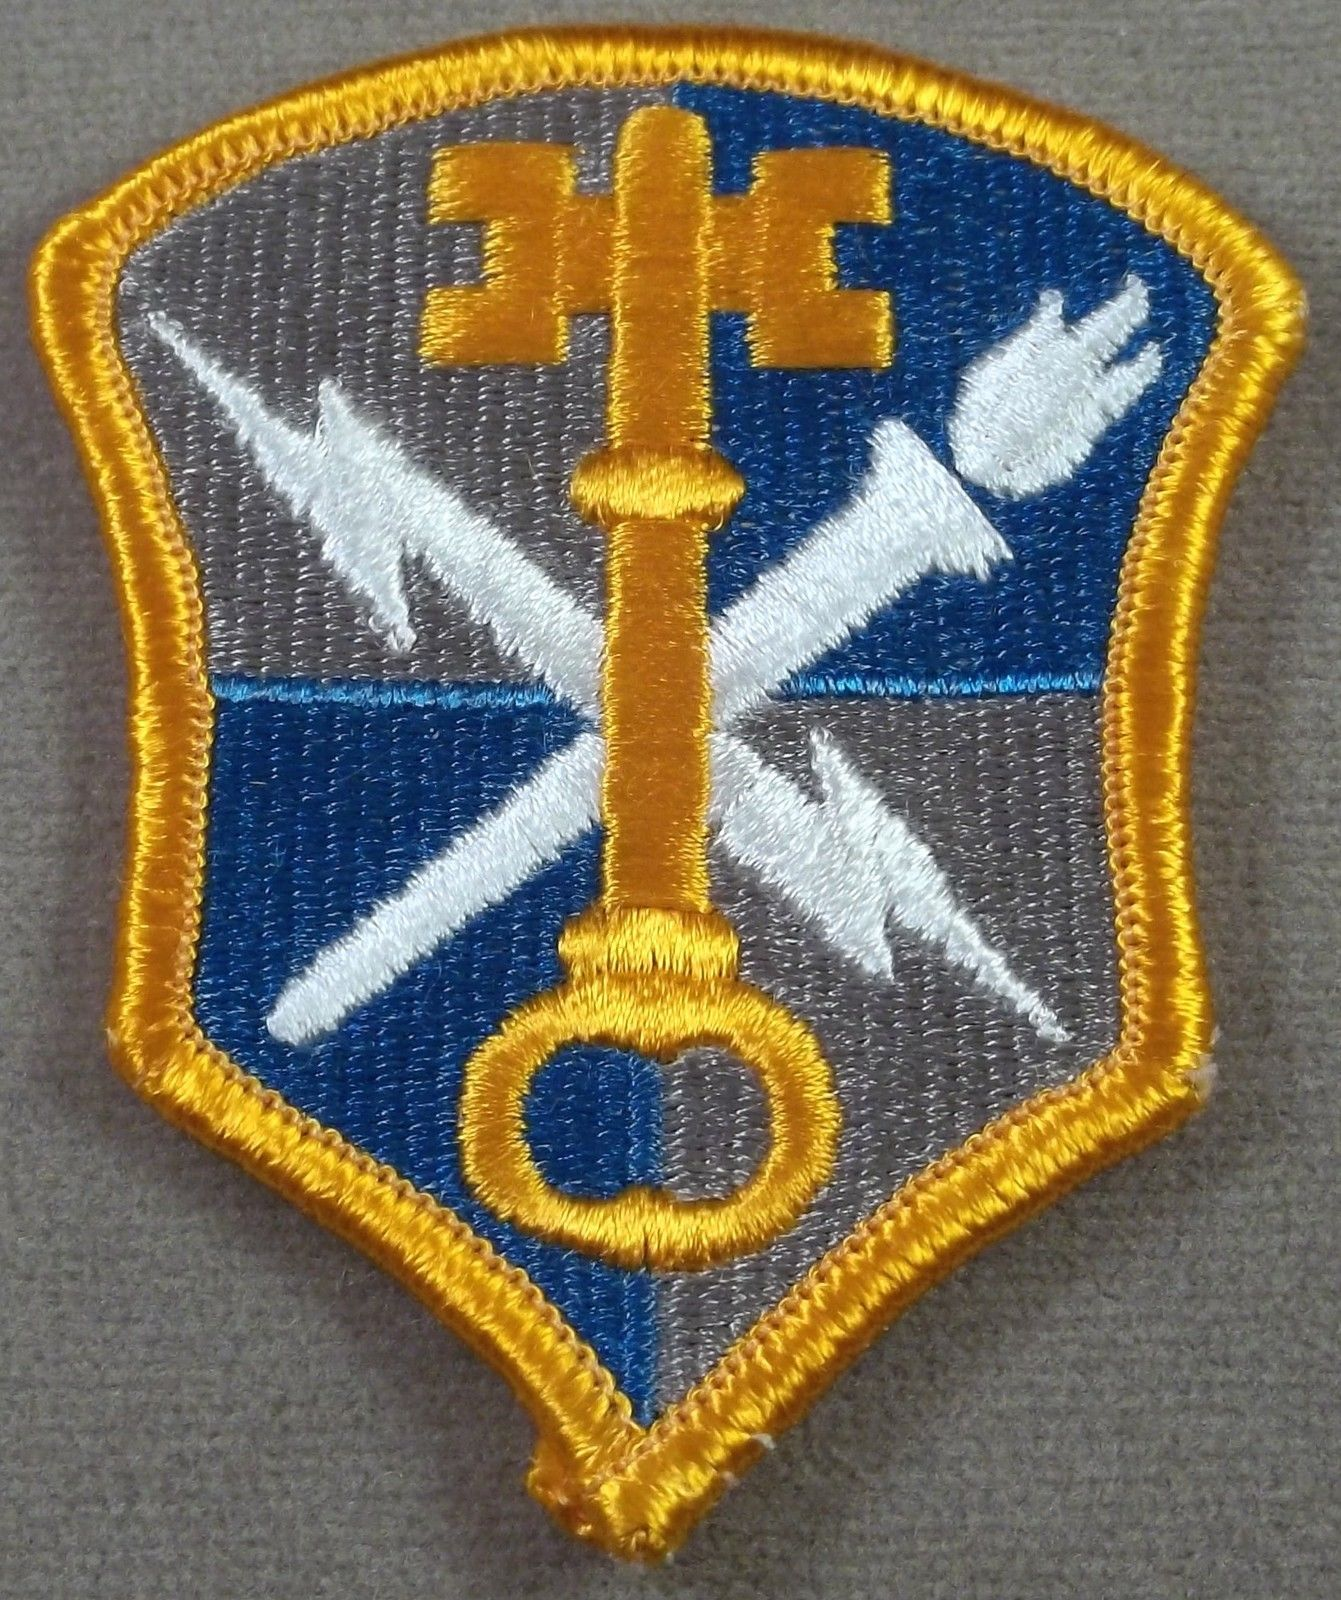 Details About Us Army Intelligence & Securitymand Full Color Merrowed  Edge Patch